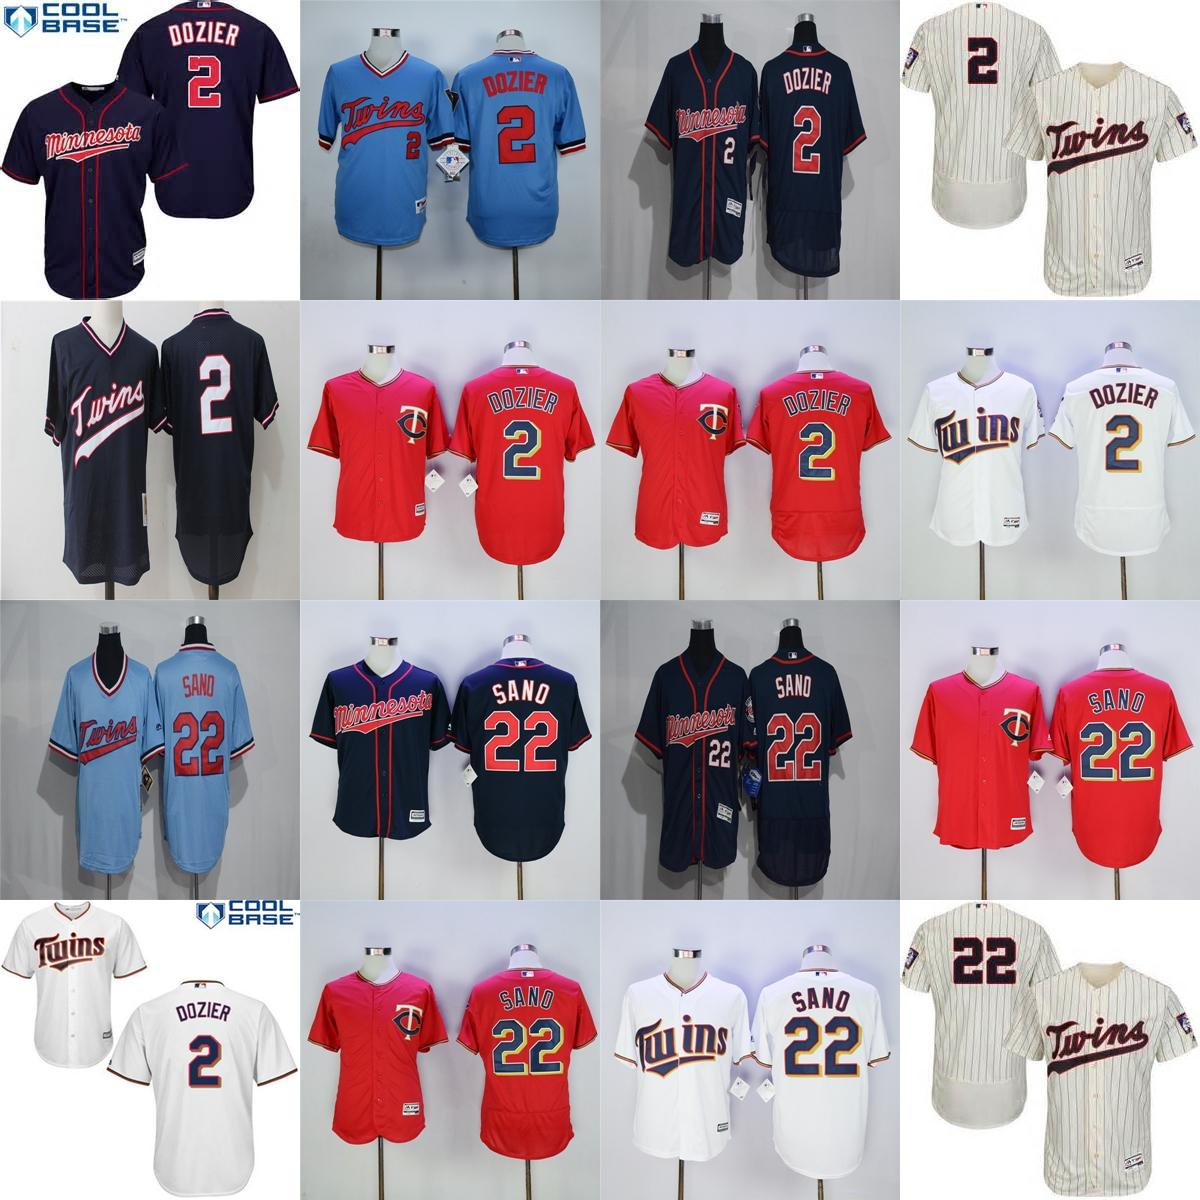 fac983c6e ... Cool Base jersey Top quality jerseys 2017 Wholesale Mens Womens Youth Minnesota  Twins 2 Brian Dozier 22 Miguel Sano White Red Blue ...